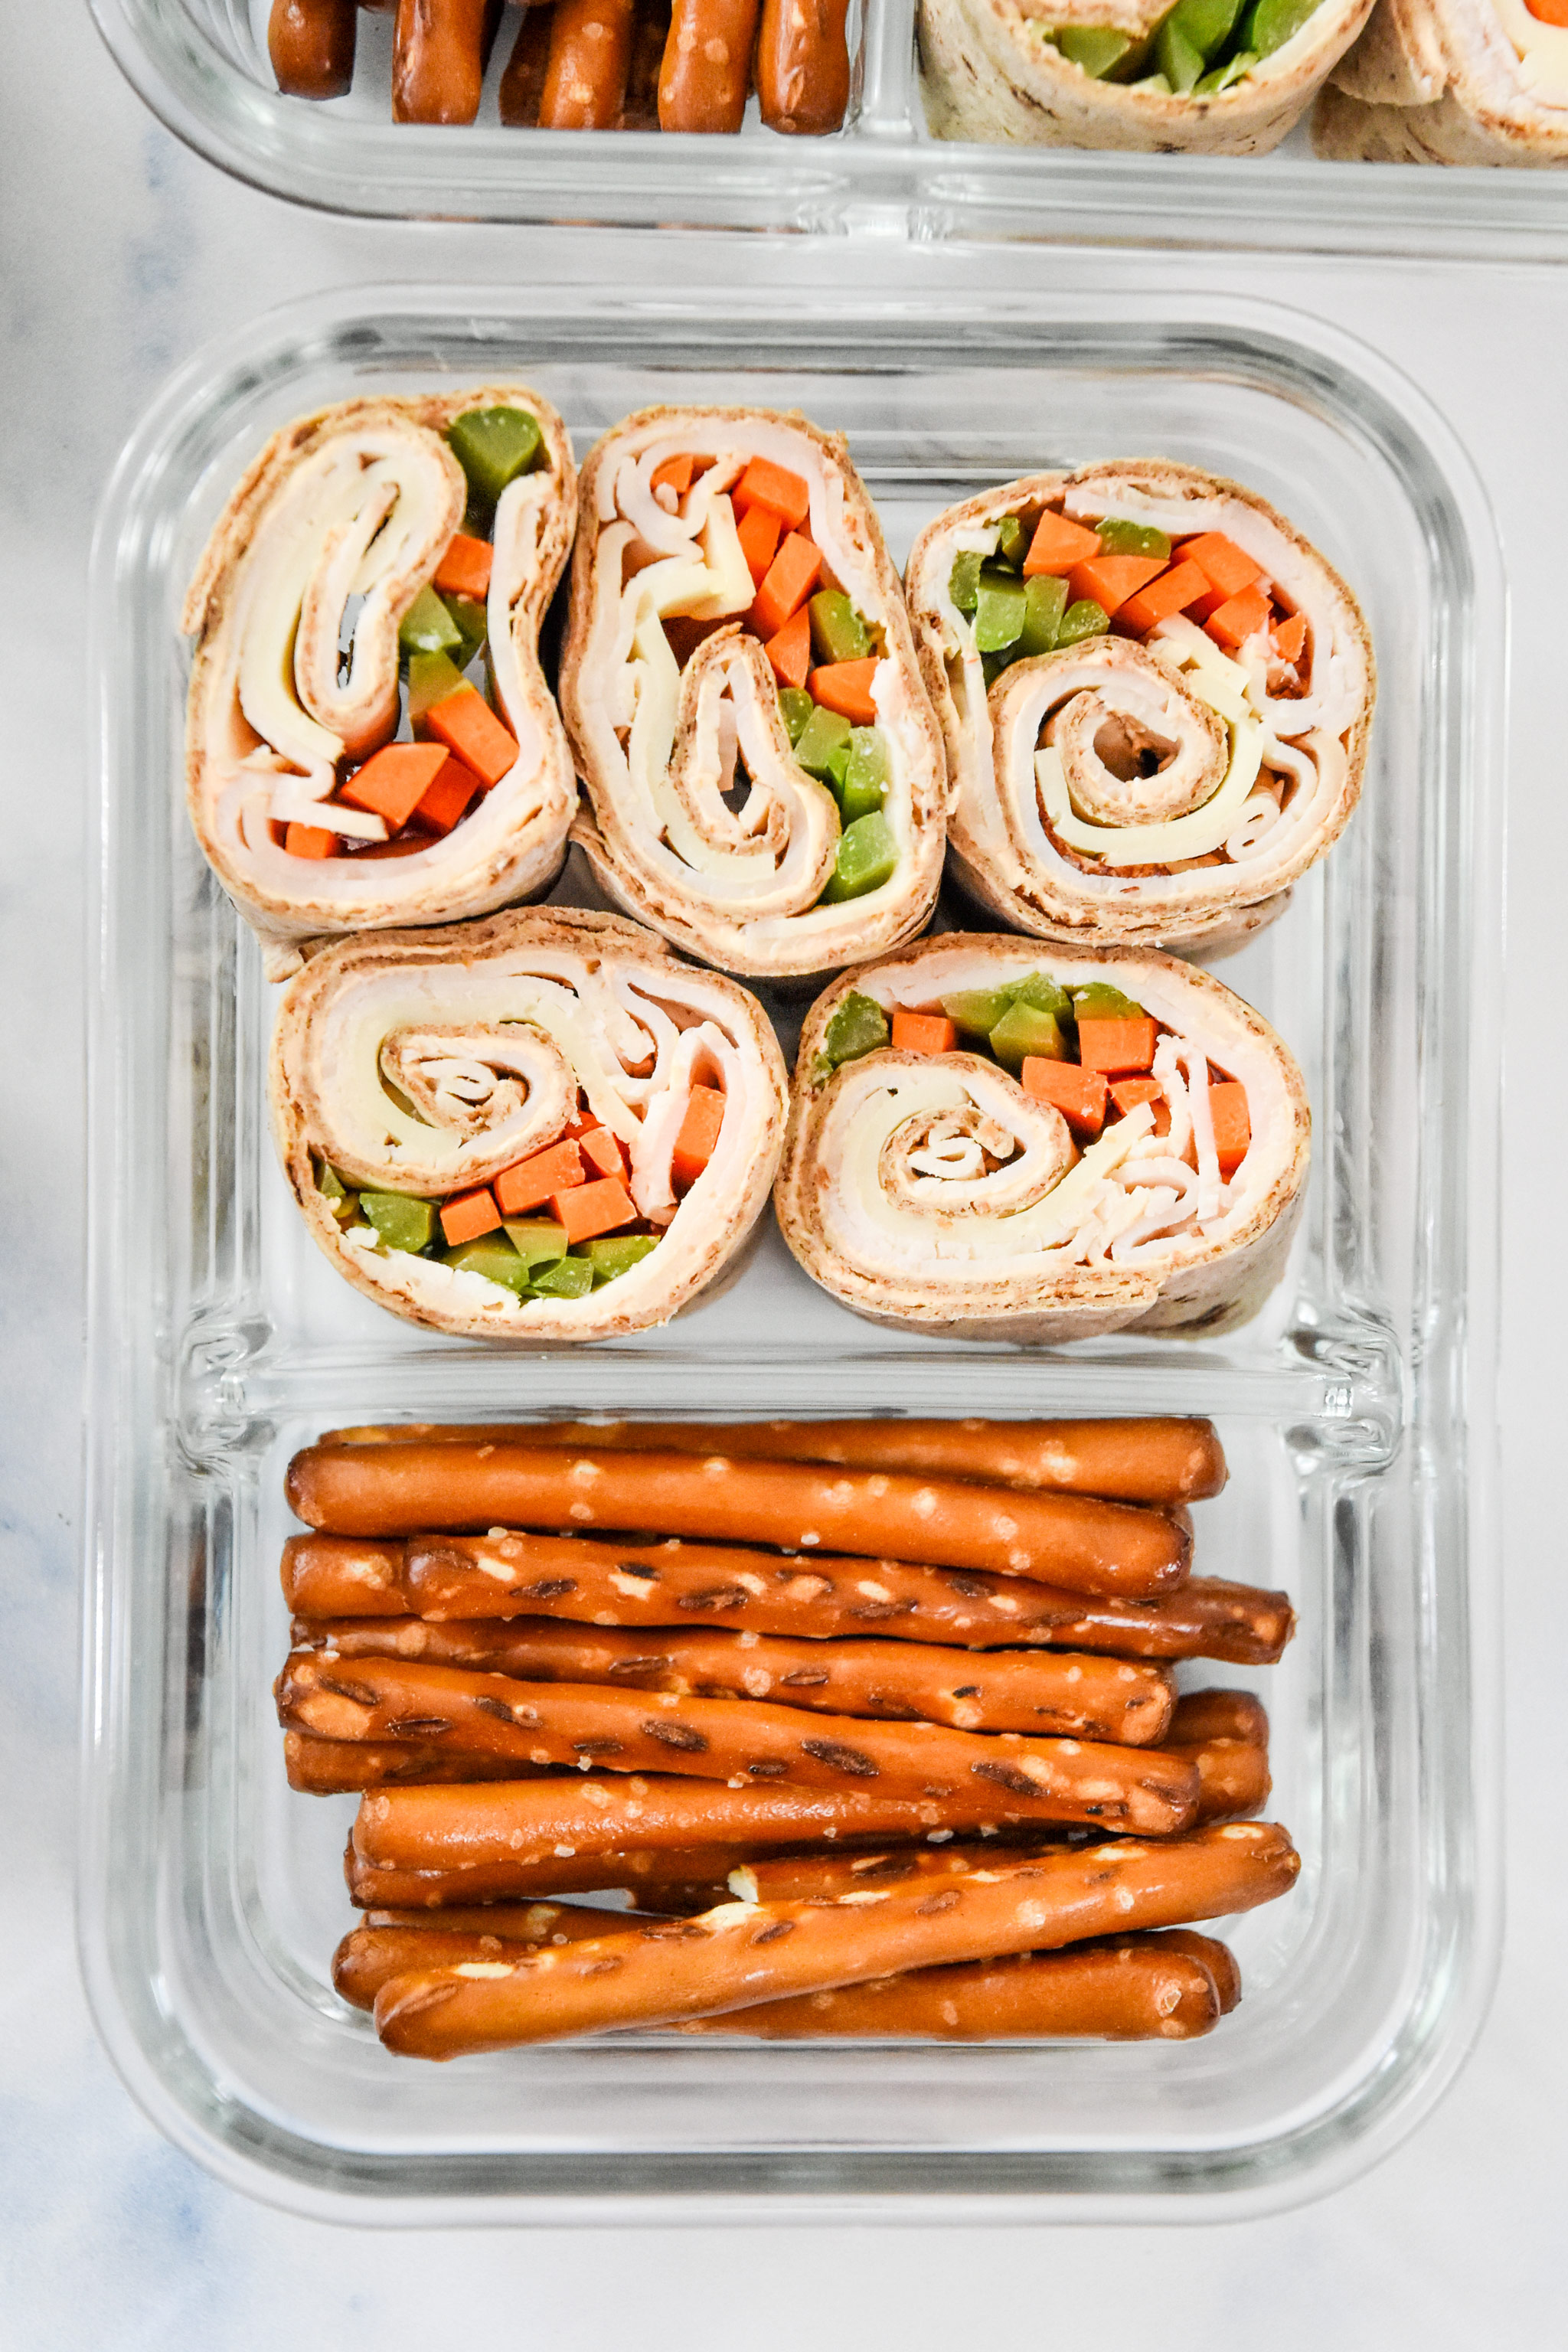 buffalo chicken pinwheels meal prep with pretzels in a glass container.